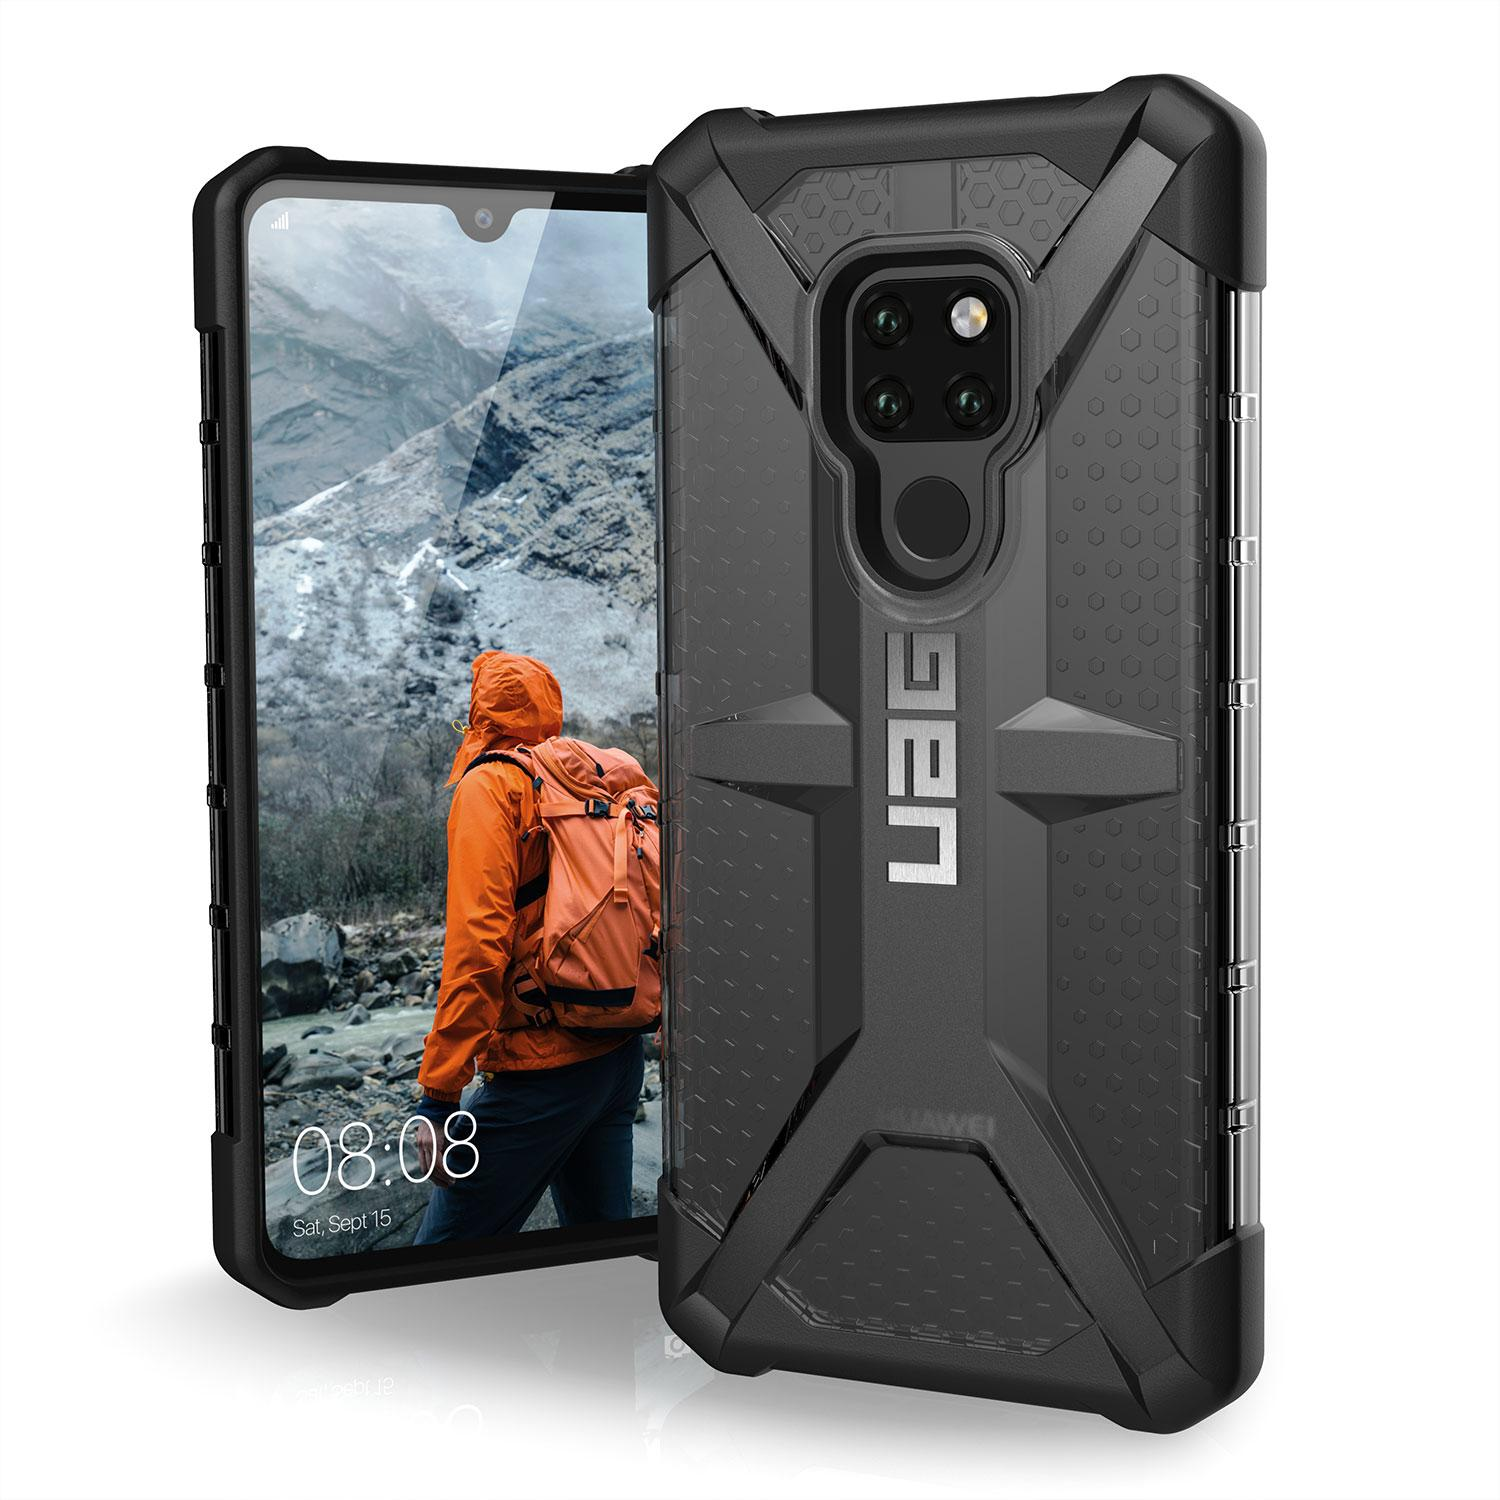 separation shoes 18080 b93ce UAG Huawei Mate 20 / Mate 20 Pro Phone Case - Price in Singapore ...